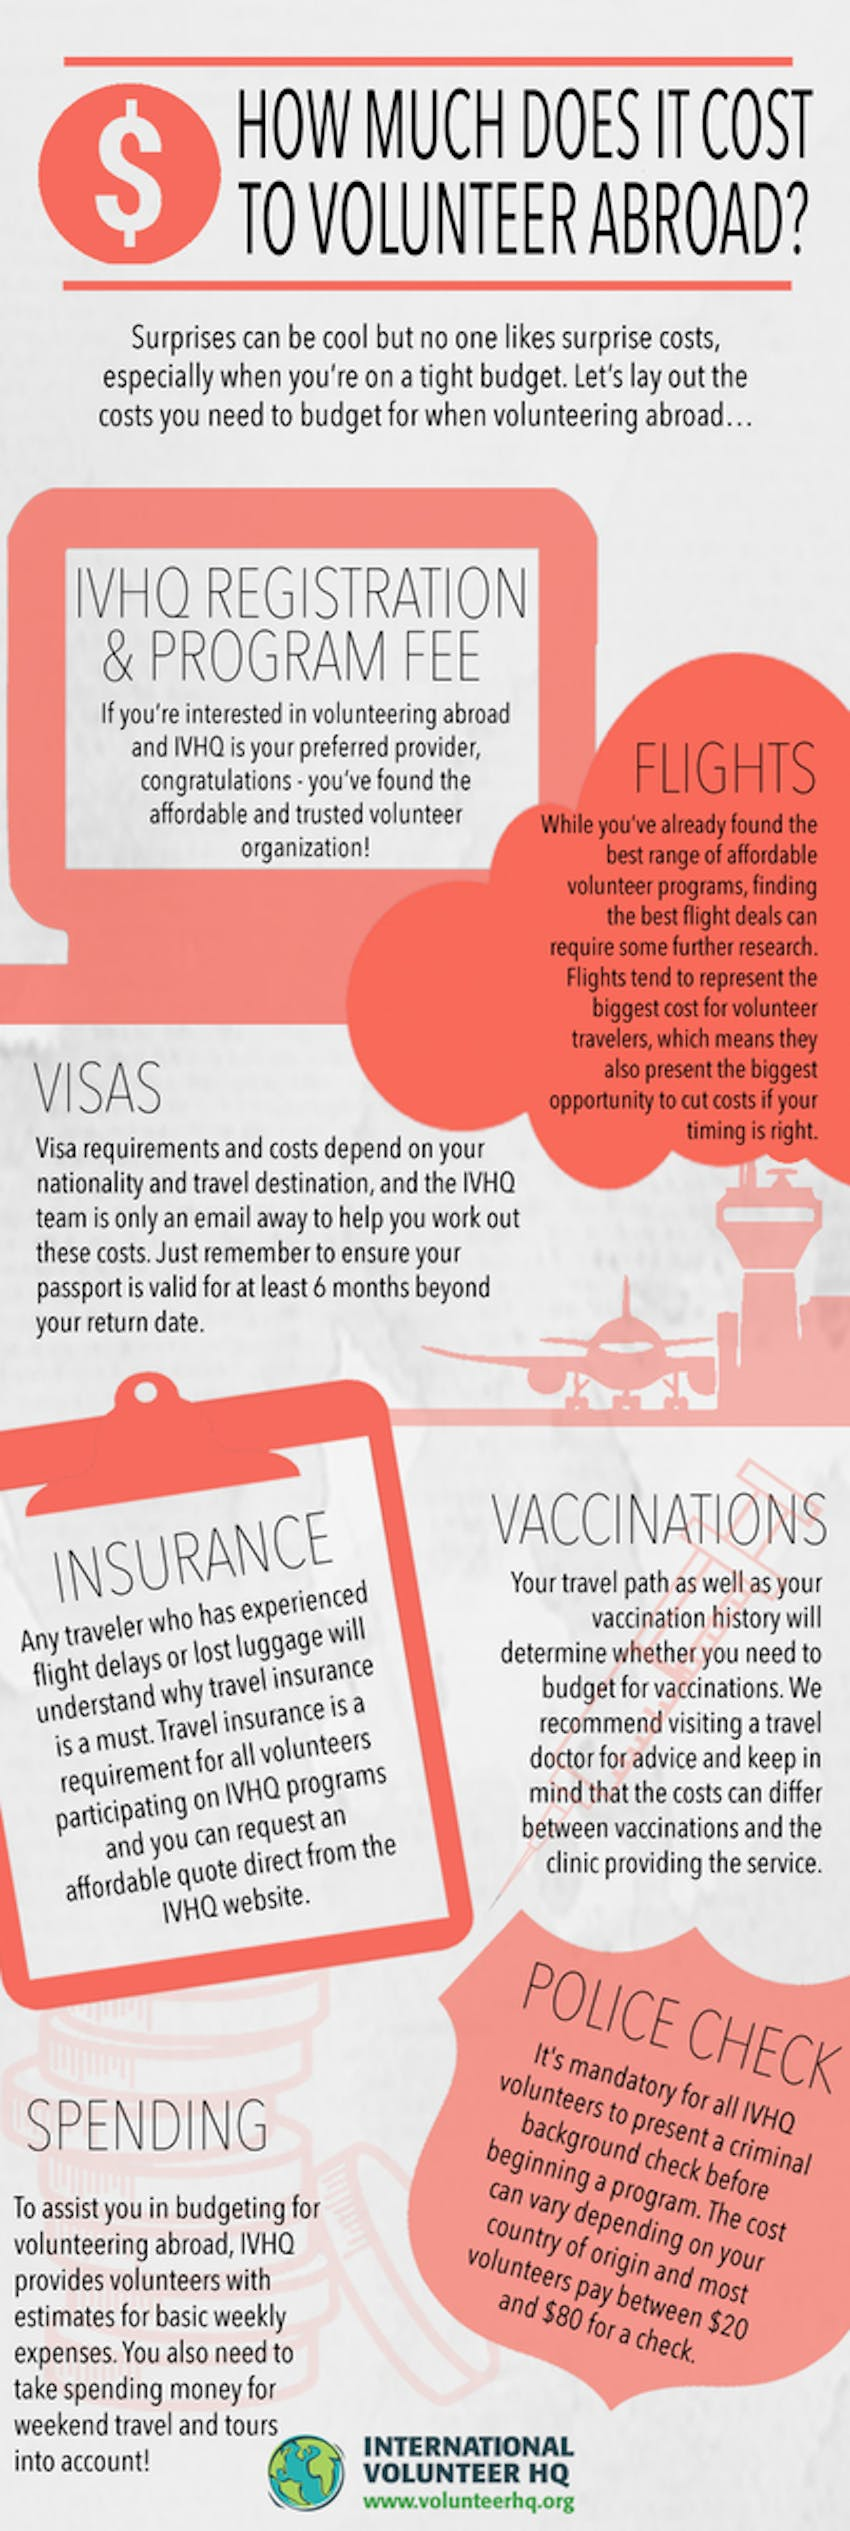 INFOGRAPHIC - How much does it cost to volunteer abroad?